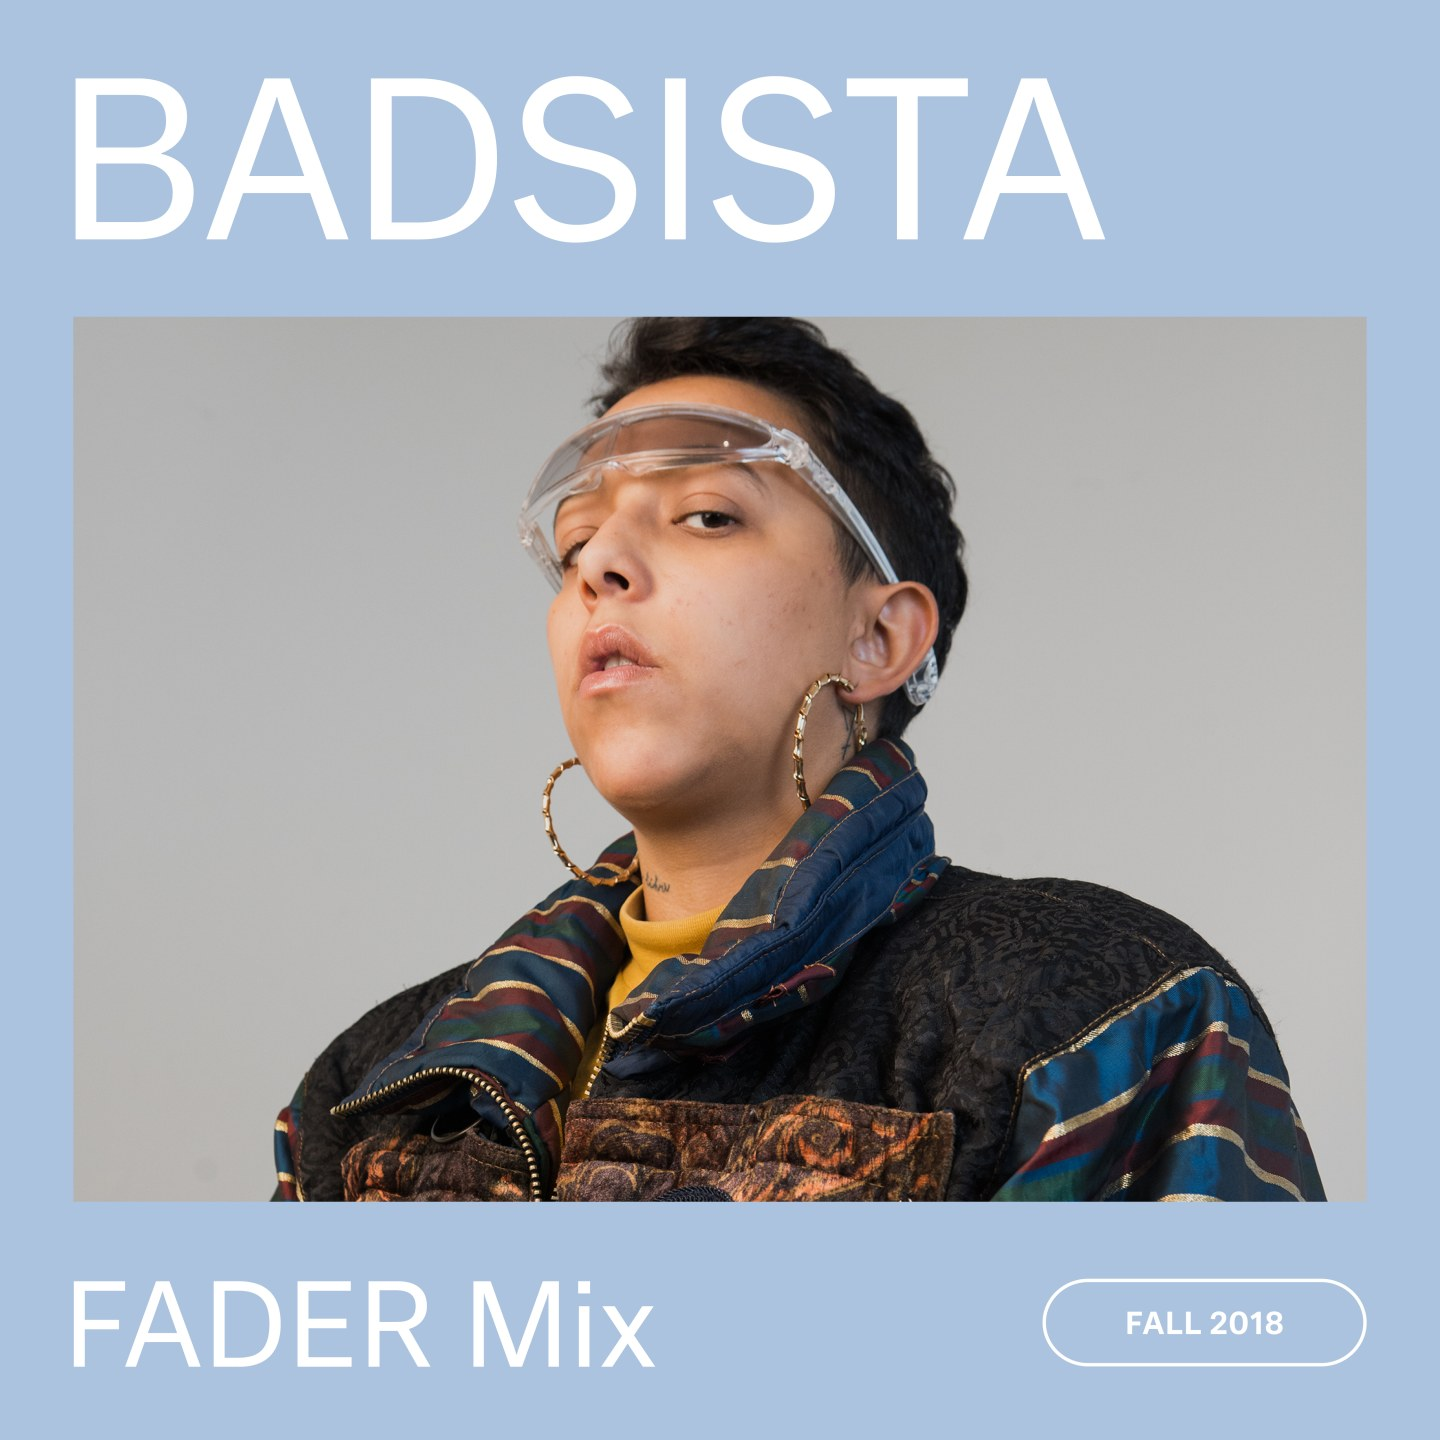 Listen to a new FADER Mix by BADSISTA